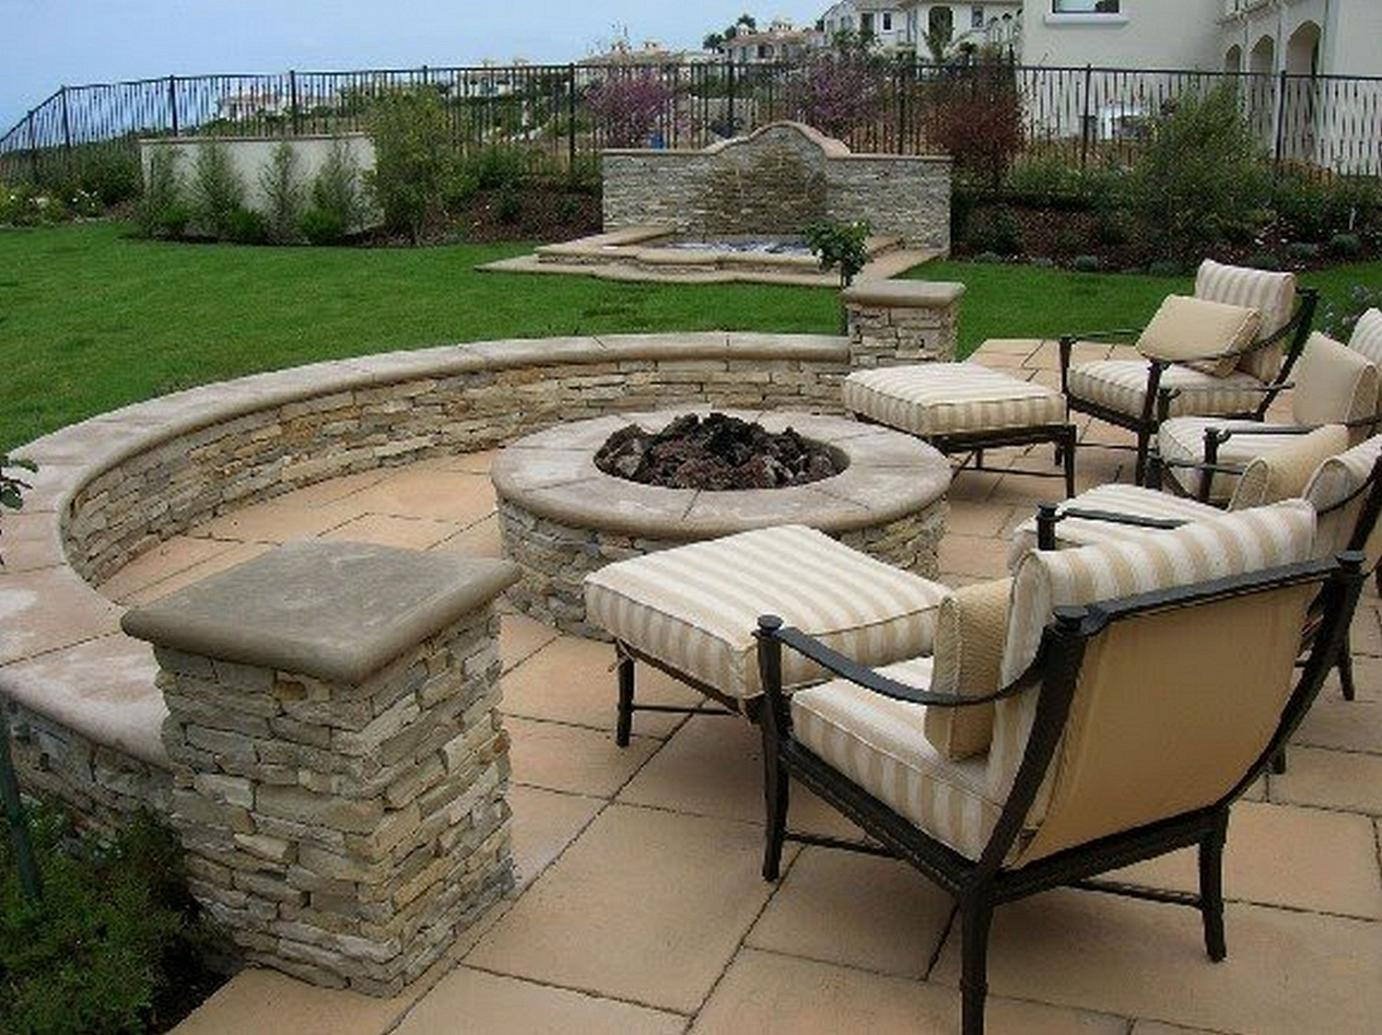 backyard patio ideas backyard paver patios paver design ideas - Paver Design Ideas